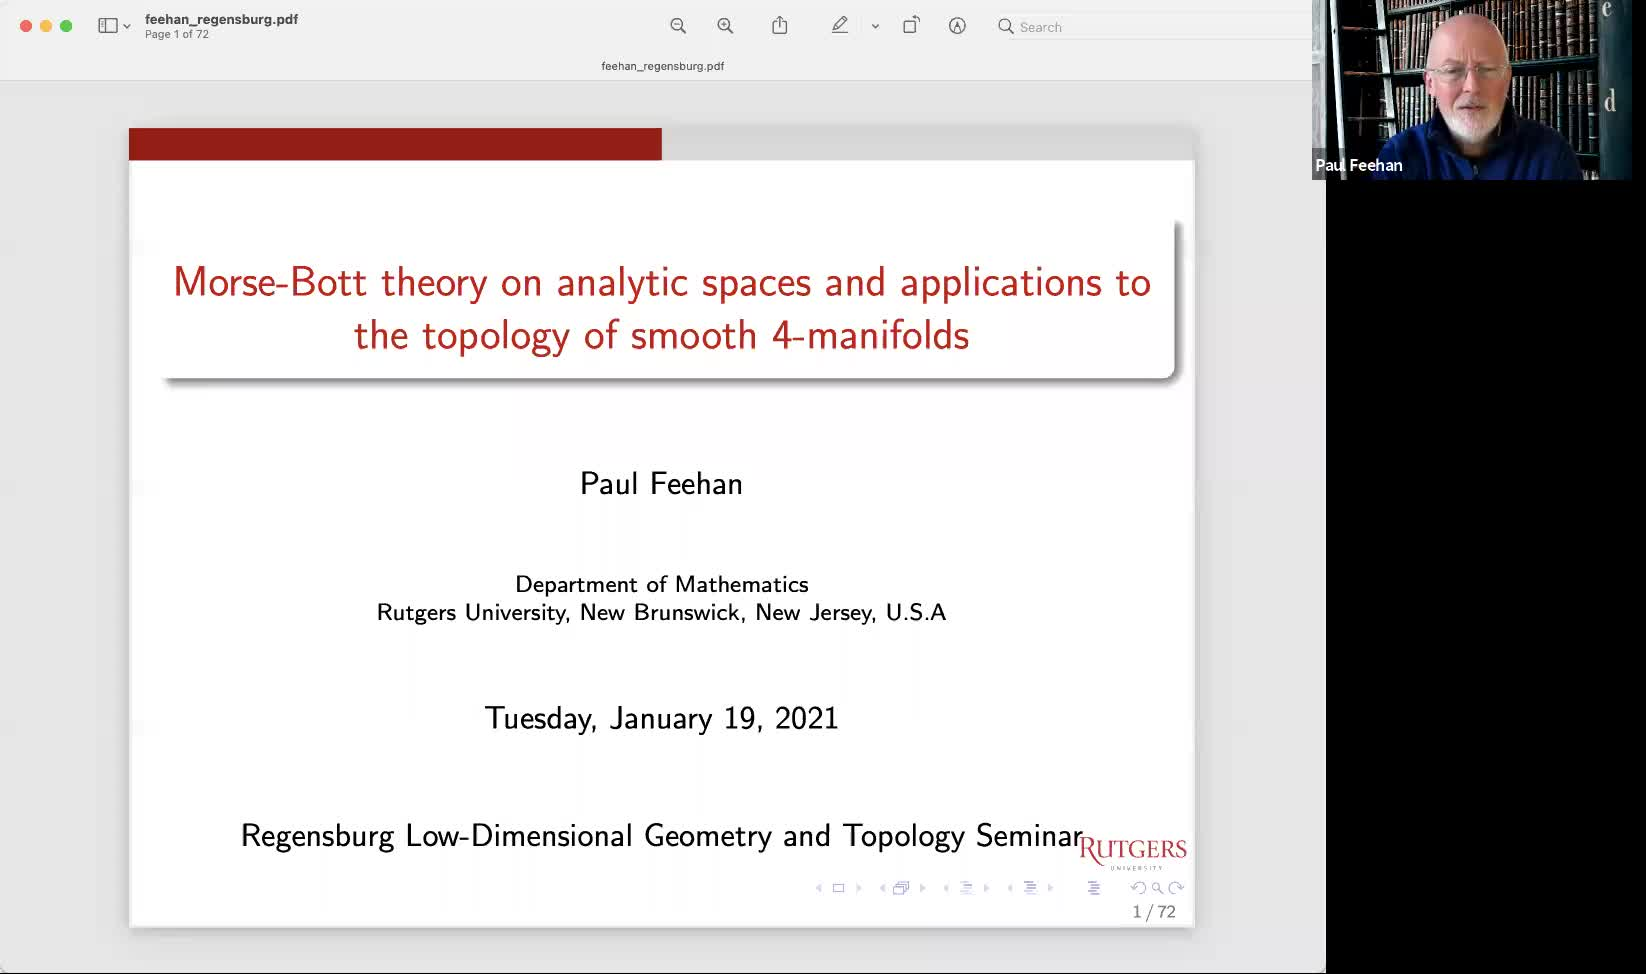 Paul Feehan: Morse-Bott theory on analytic spaces and applications to topology of smooth 4-manifolds